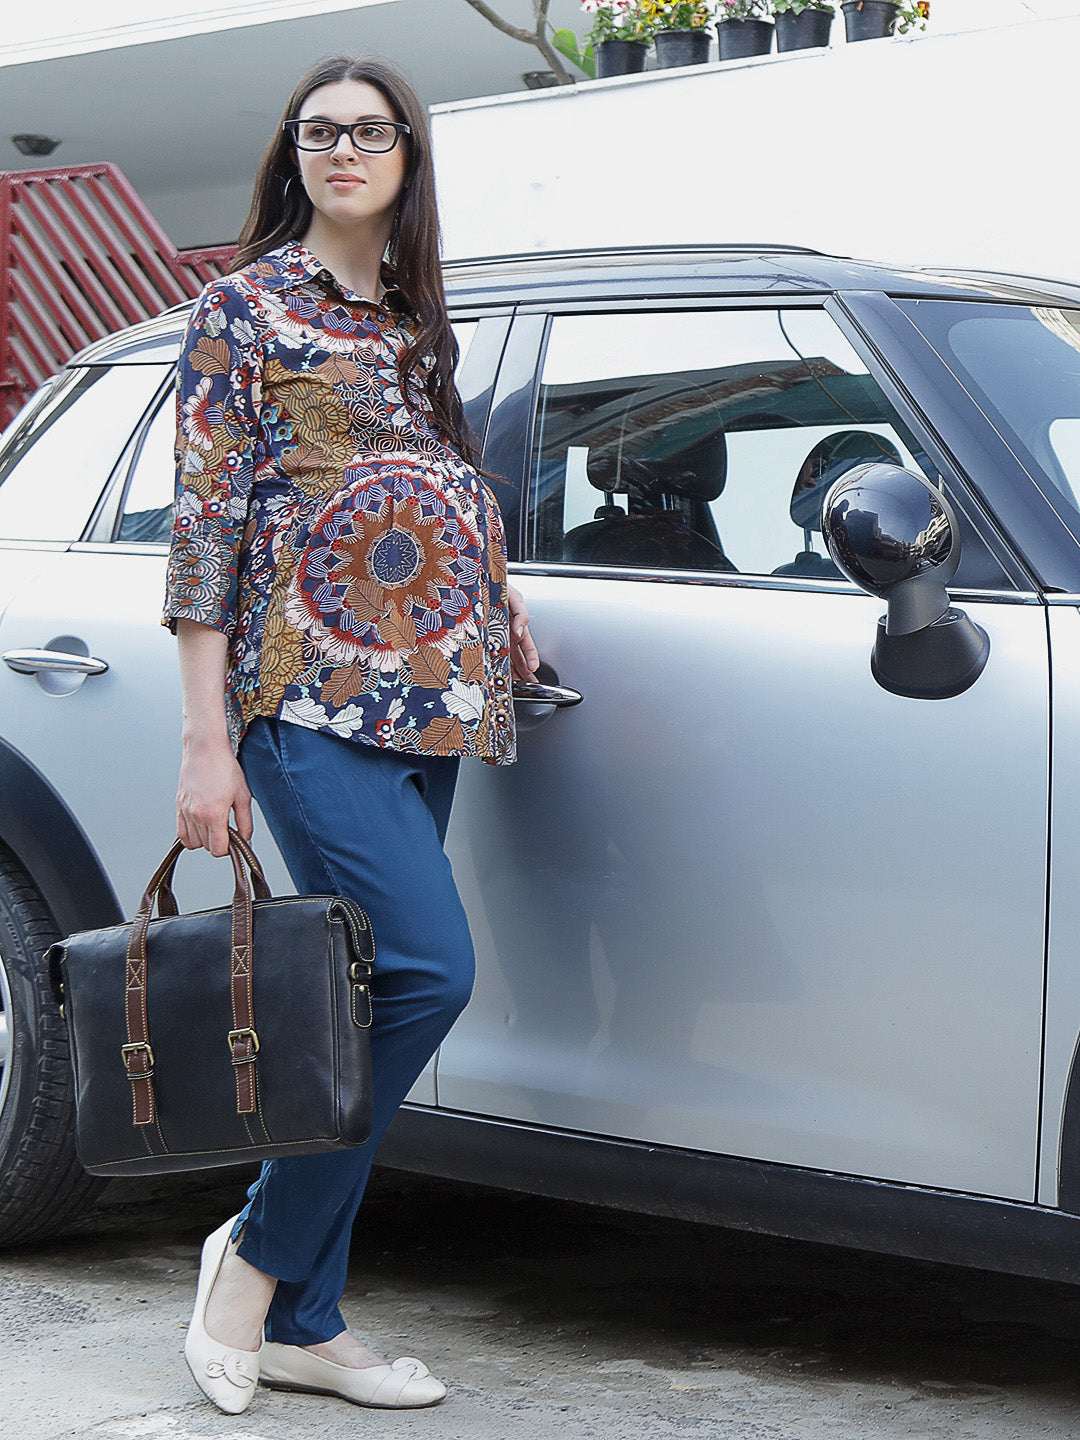 Multicolor Regular Maternity Top w/ Floral Pattern Made of Rayon